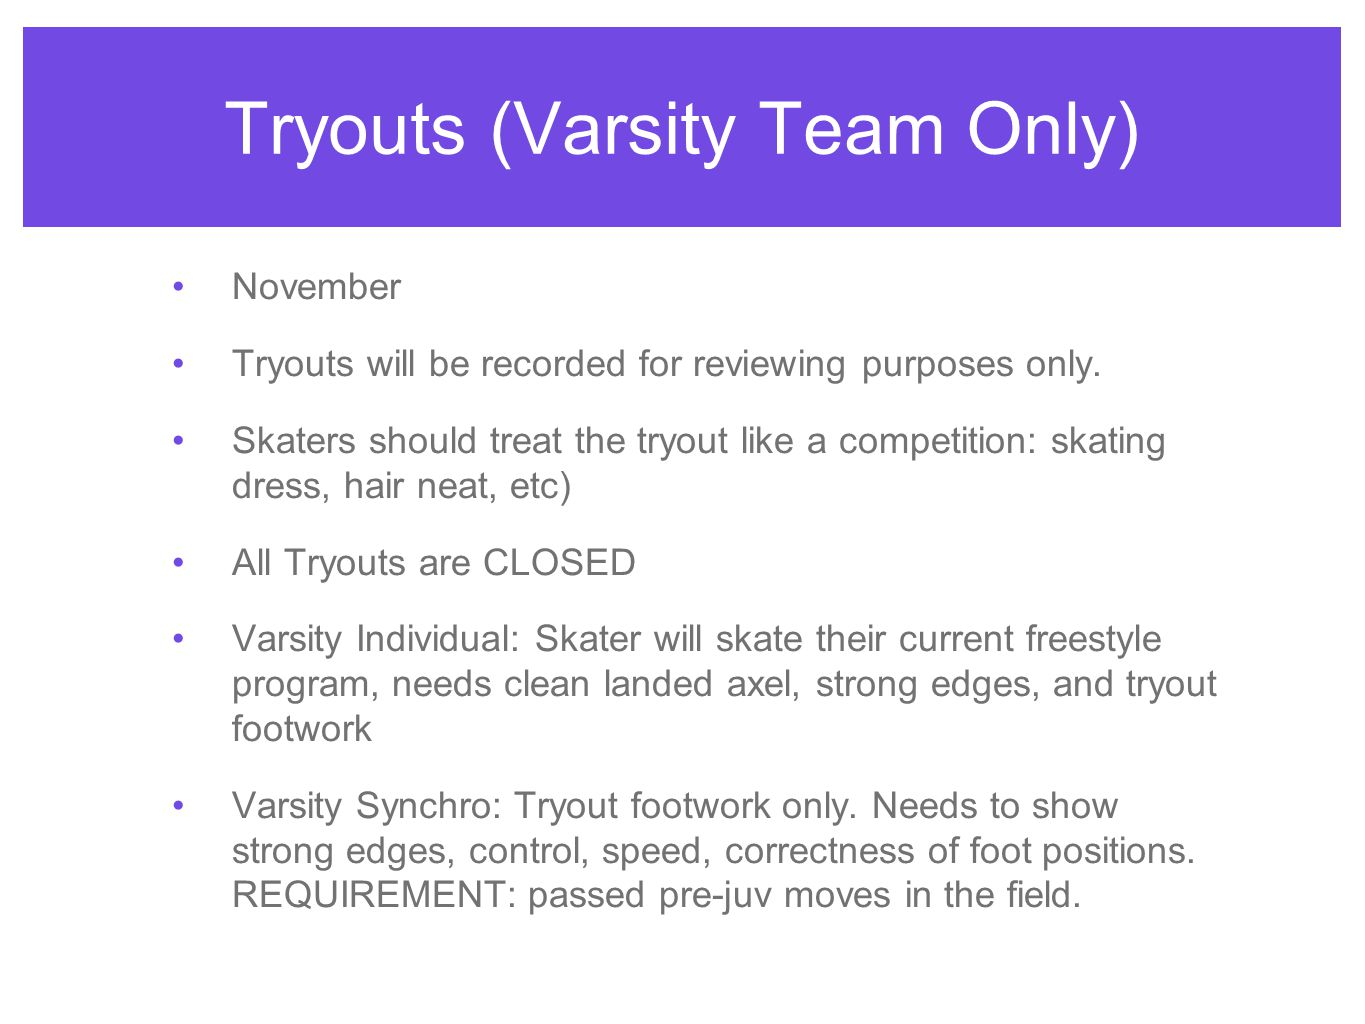 Tryouts (Varsity Team Only) November Tryouts will be recorded for reviewing purposes only.